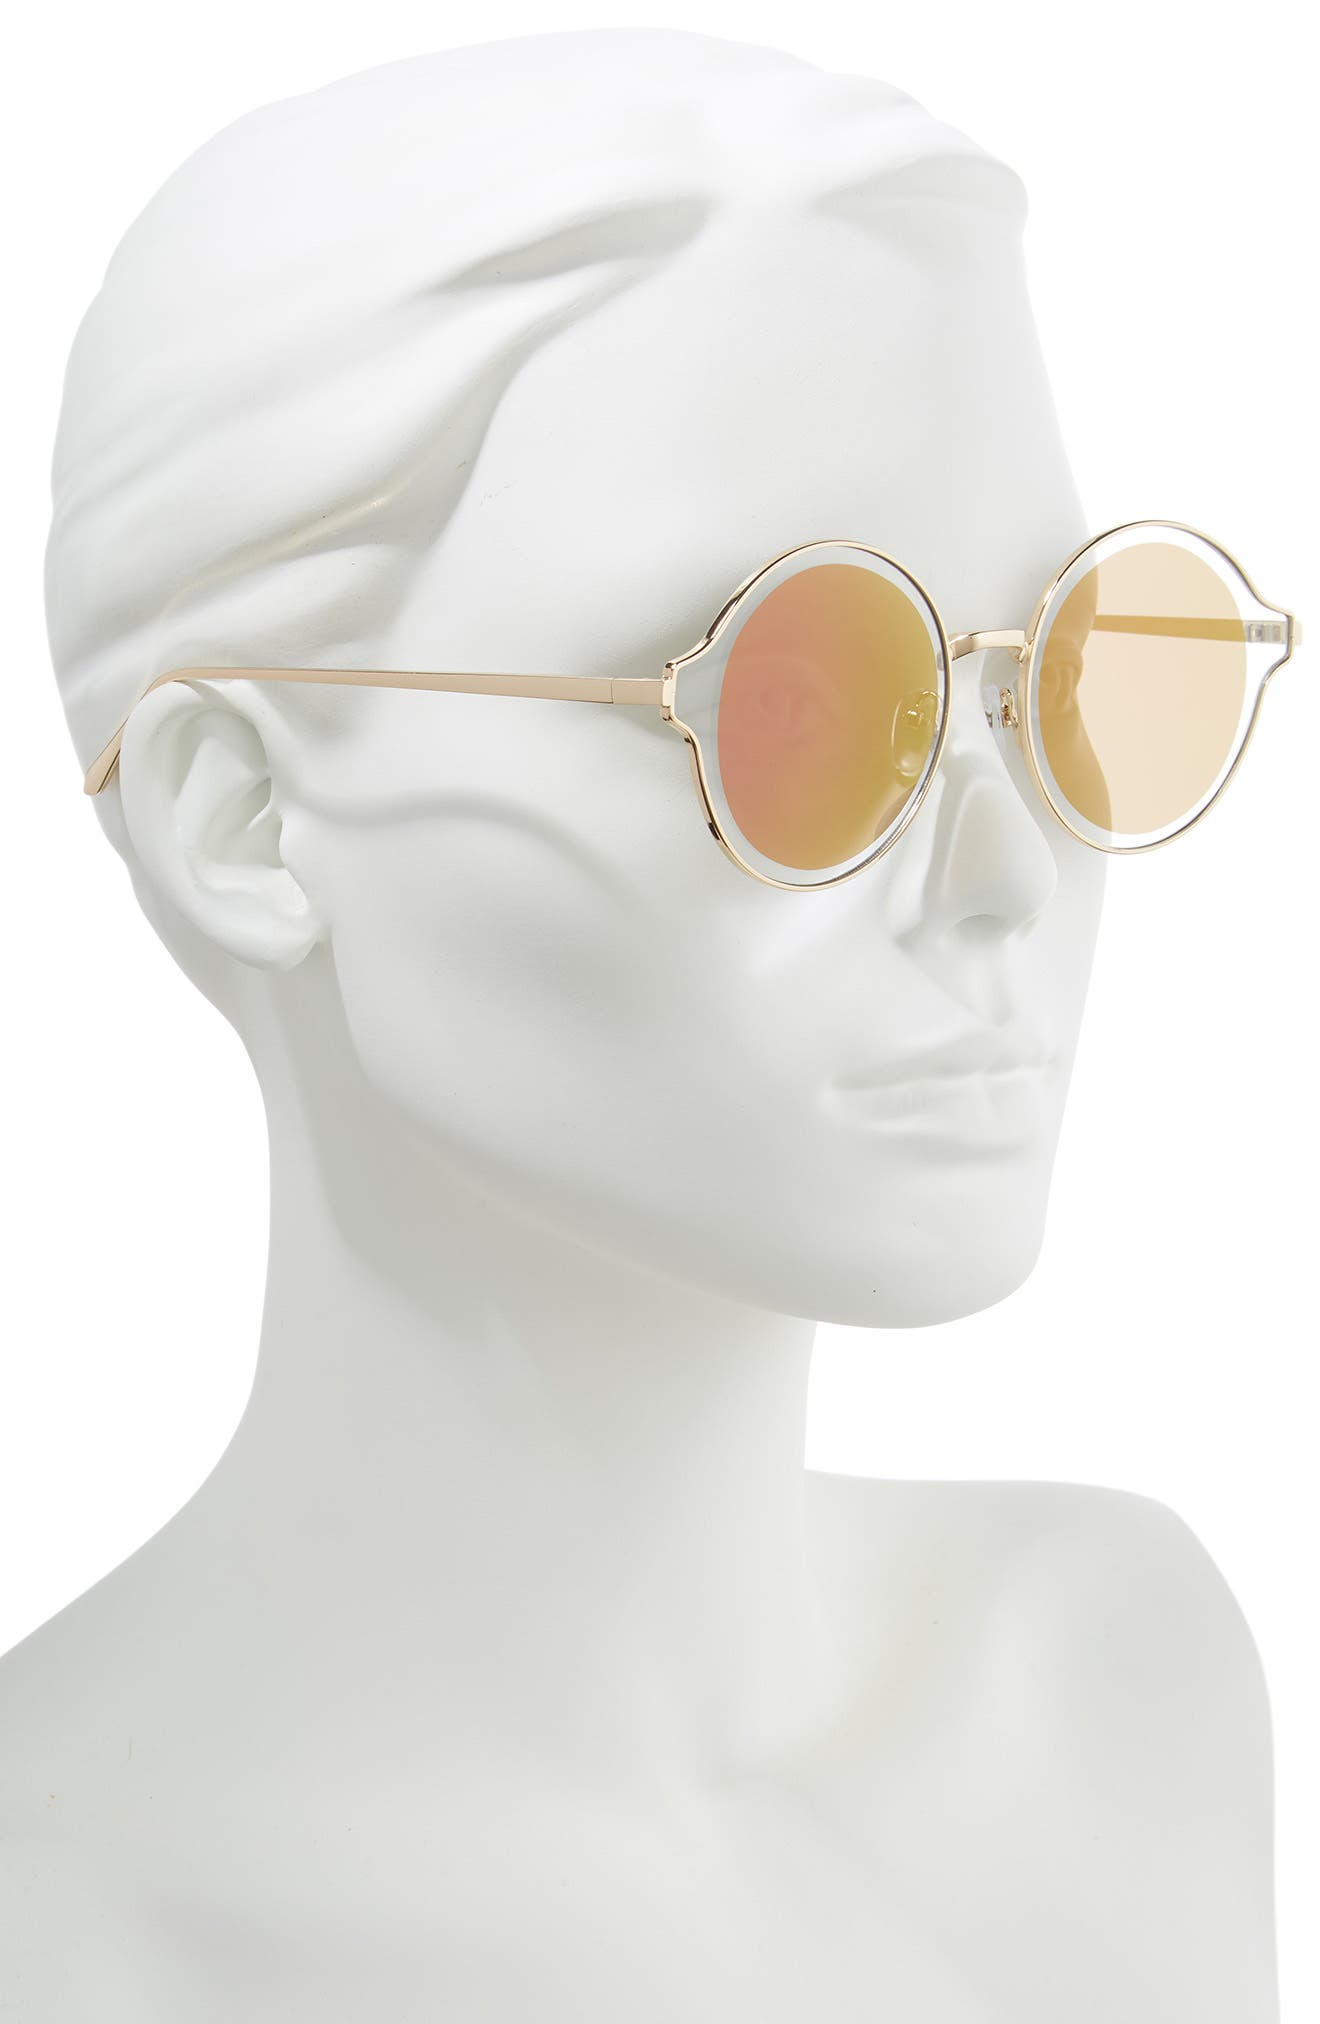 60mm Round Sunglasses,                             Alternate thumbnail 2, color,                             BROWN/ GOLD